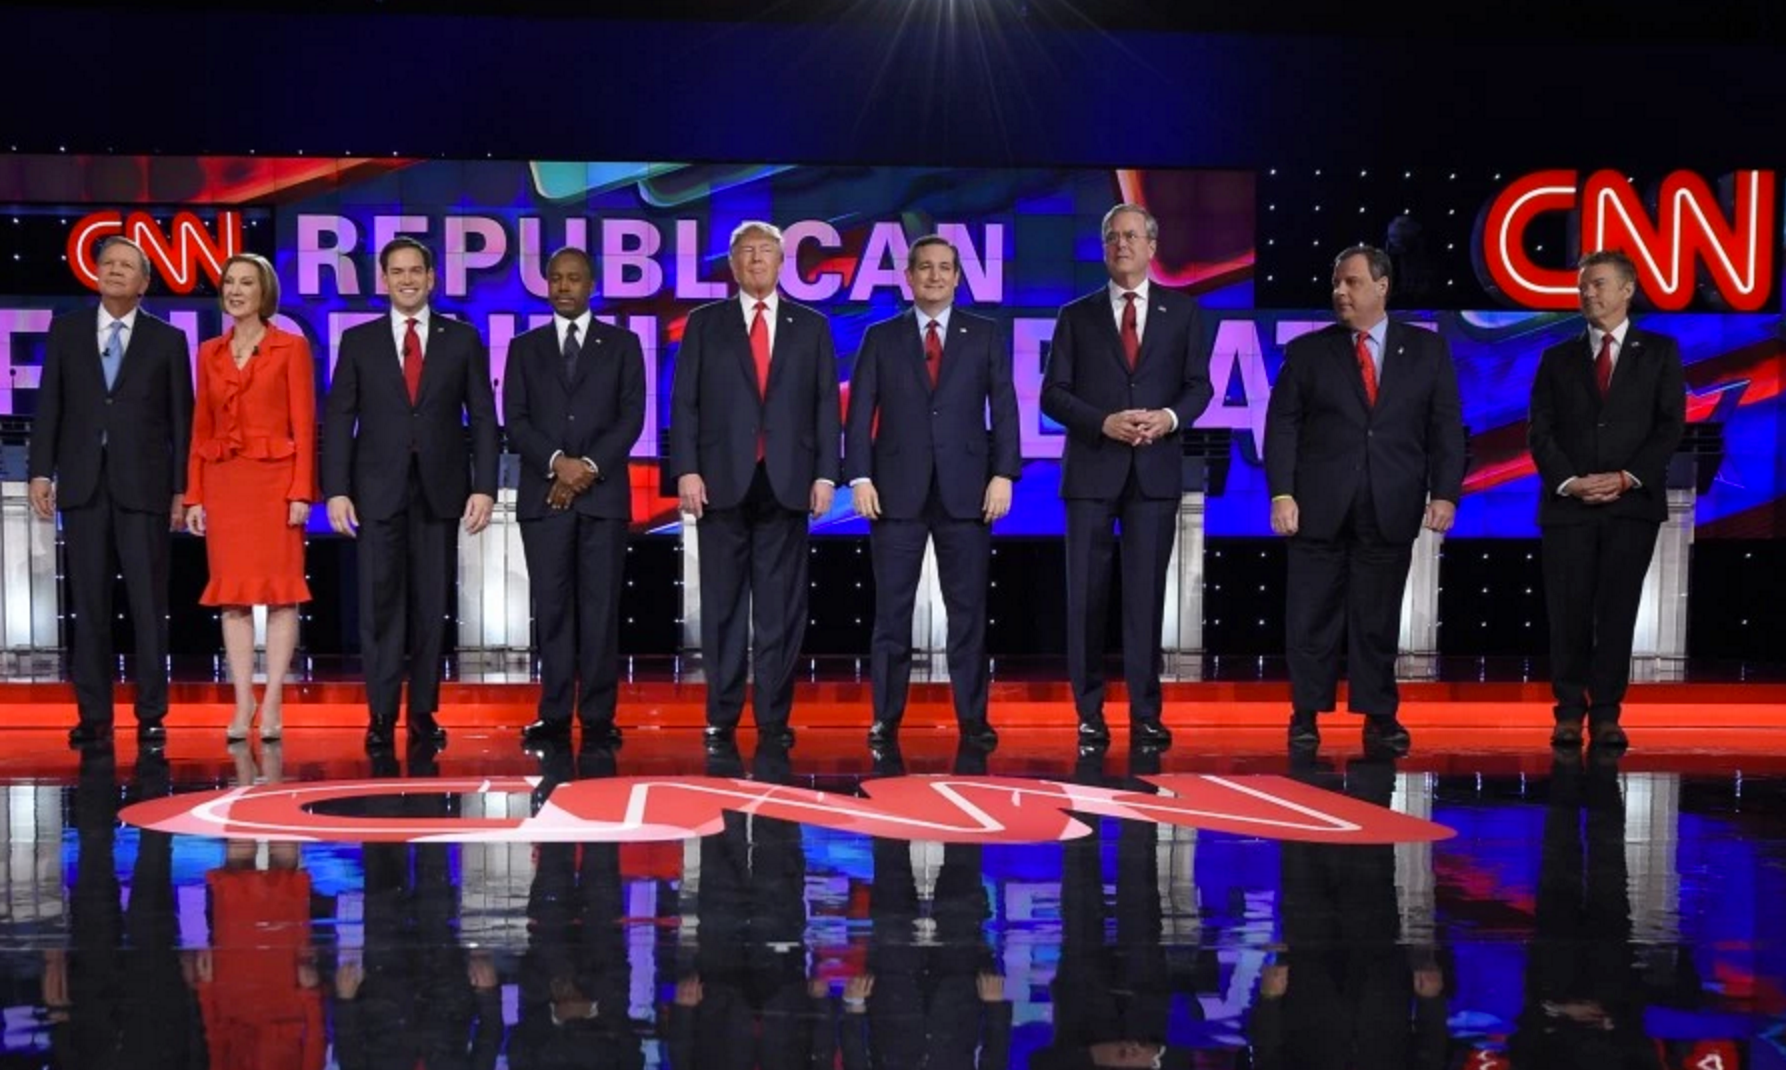 POLL: Who won the Republican debate tonight?